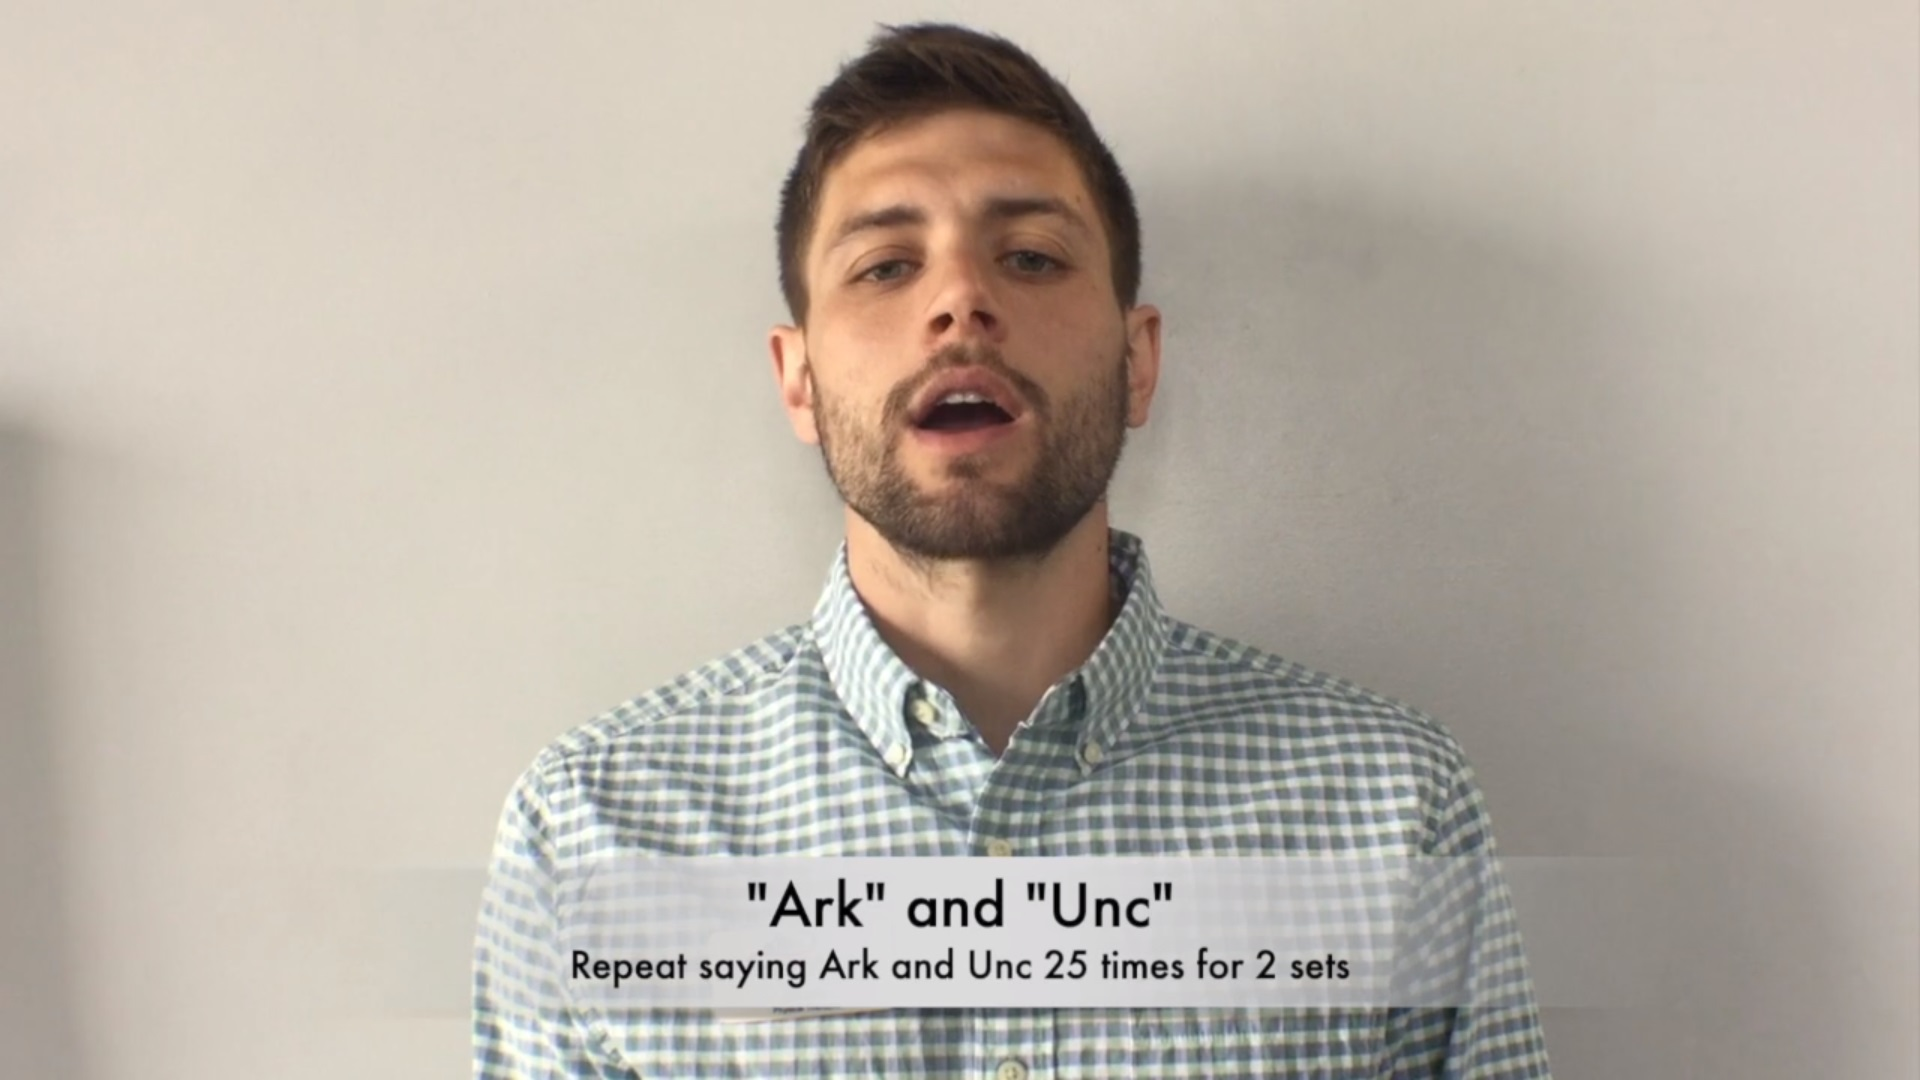 Ark Unc oral exercises, sleep apnea article